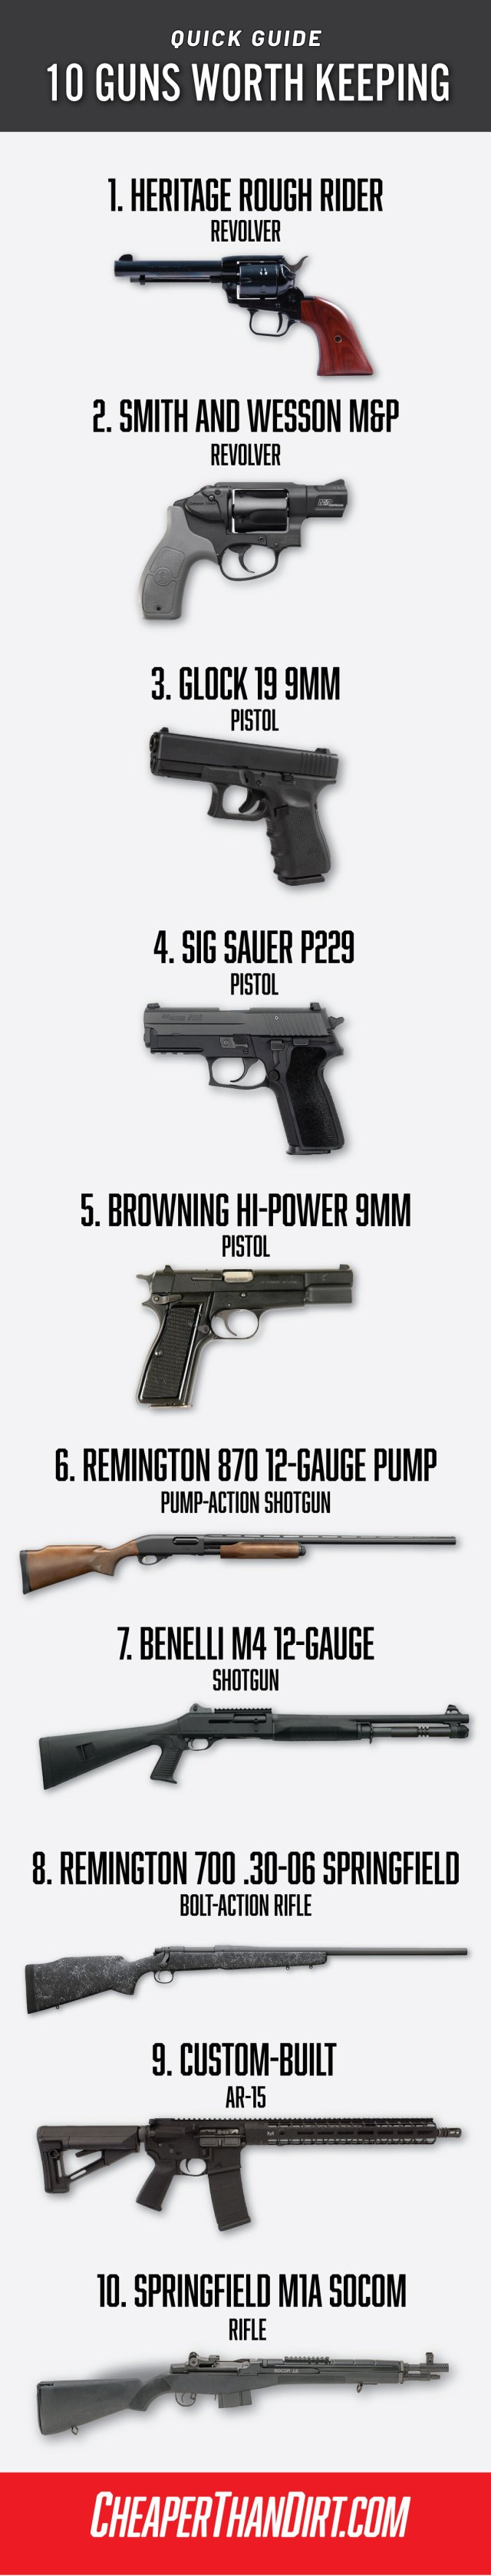 10 guns worth keeping infographic